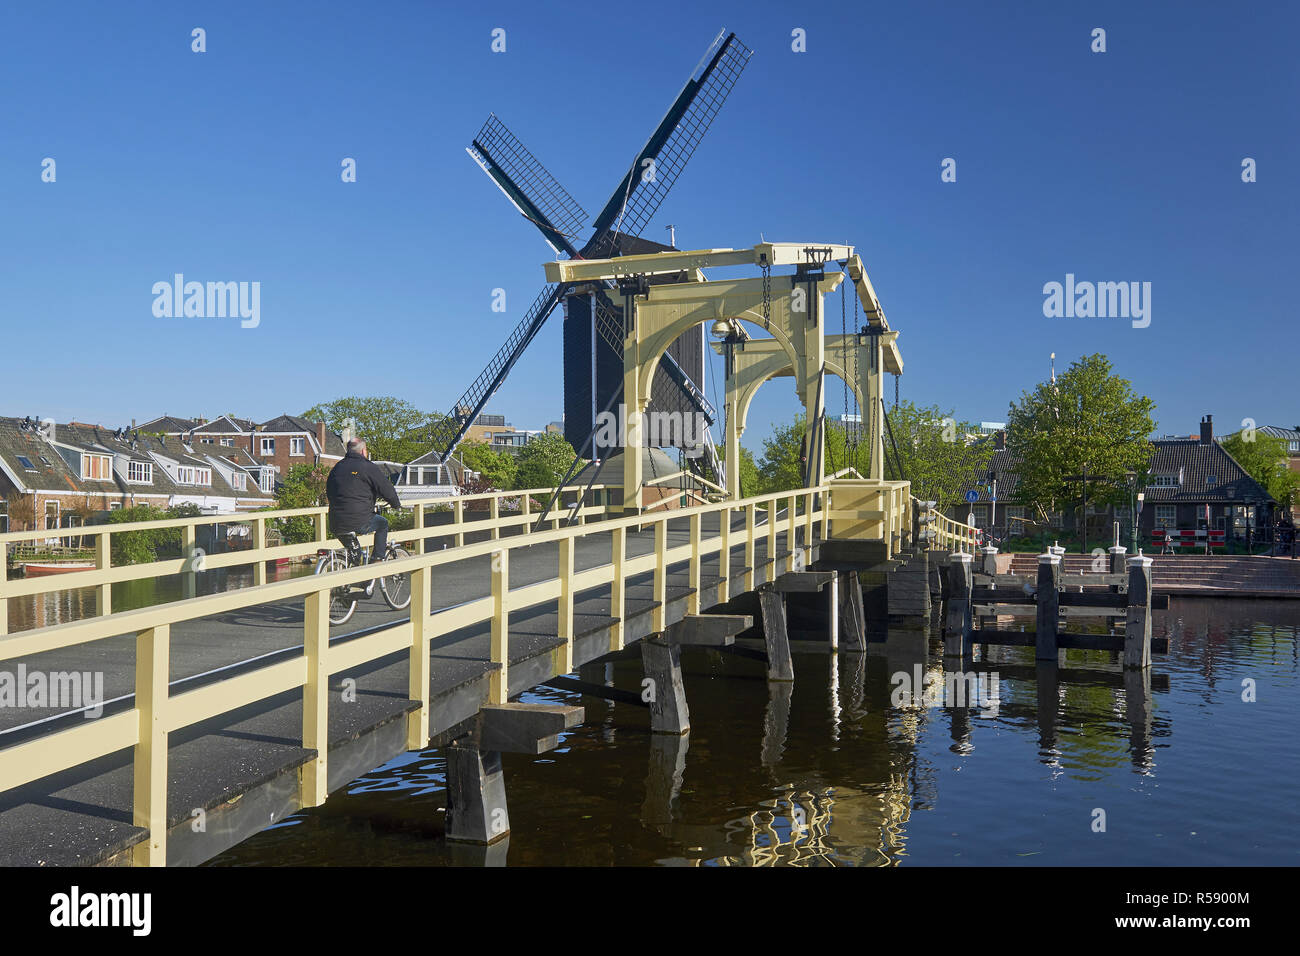 Bascule Bridge Holland Stock Photos Amp Bascule Bridge